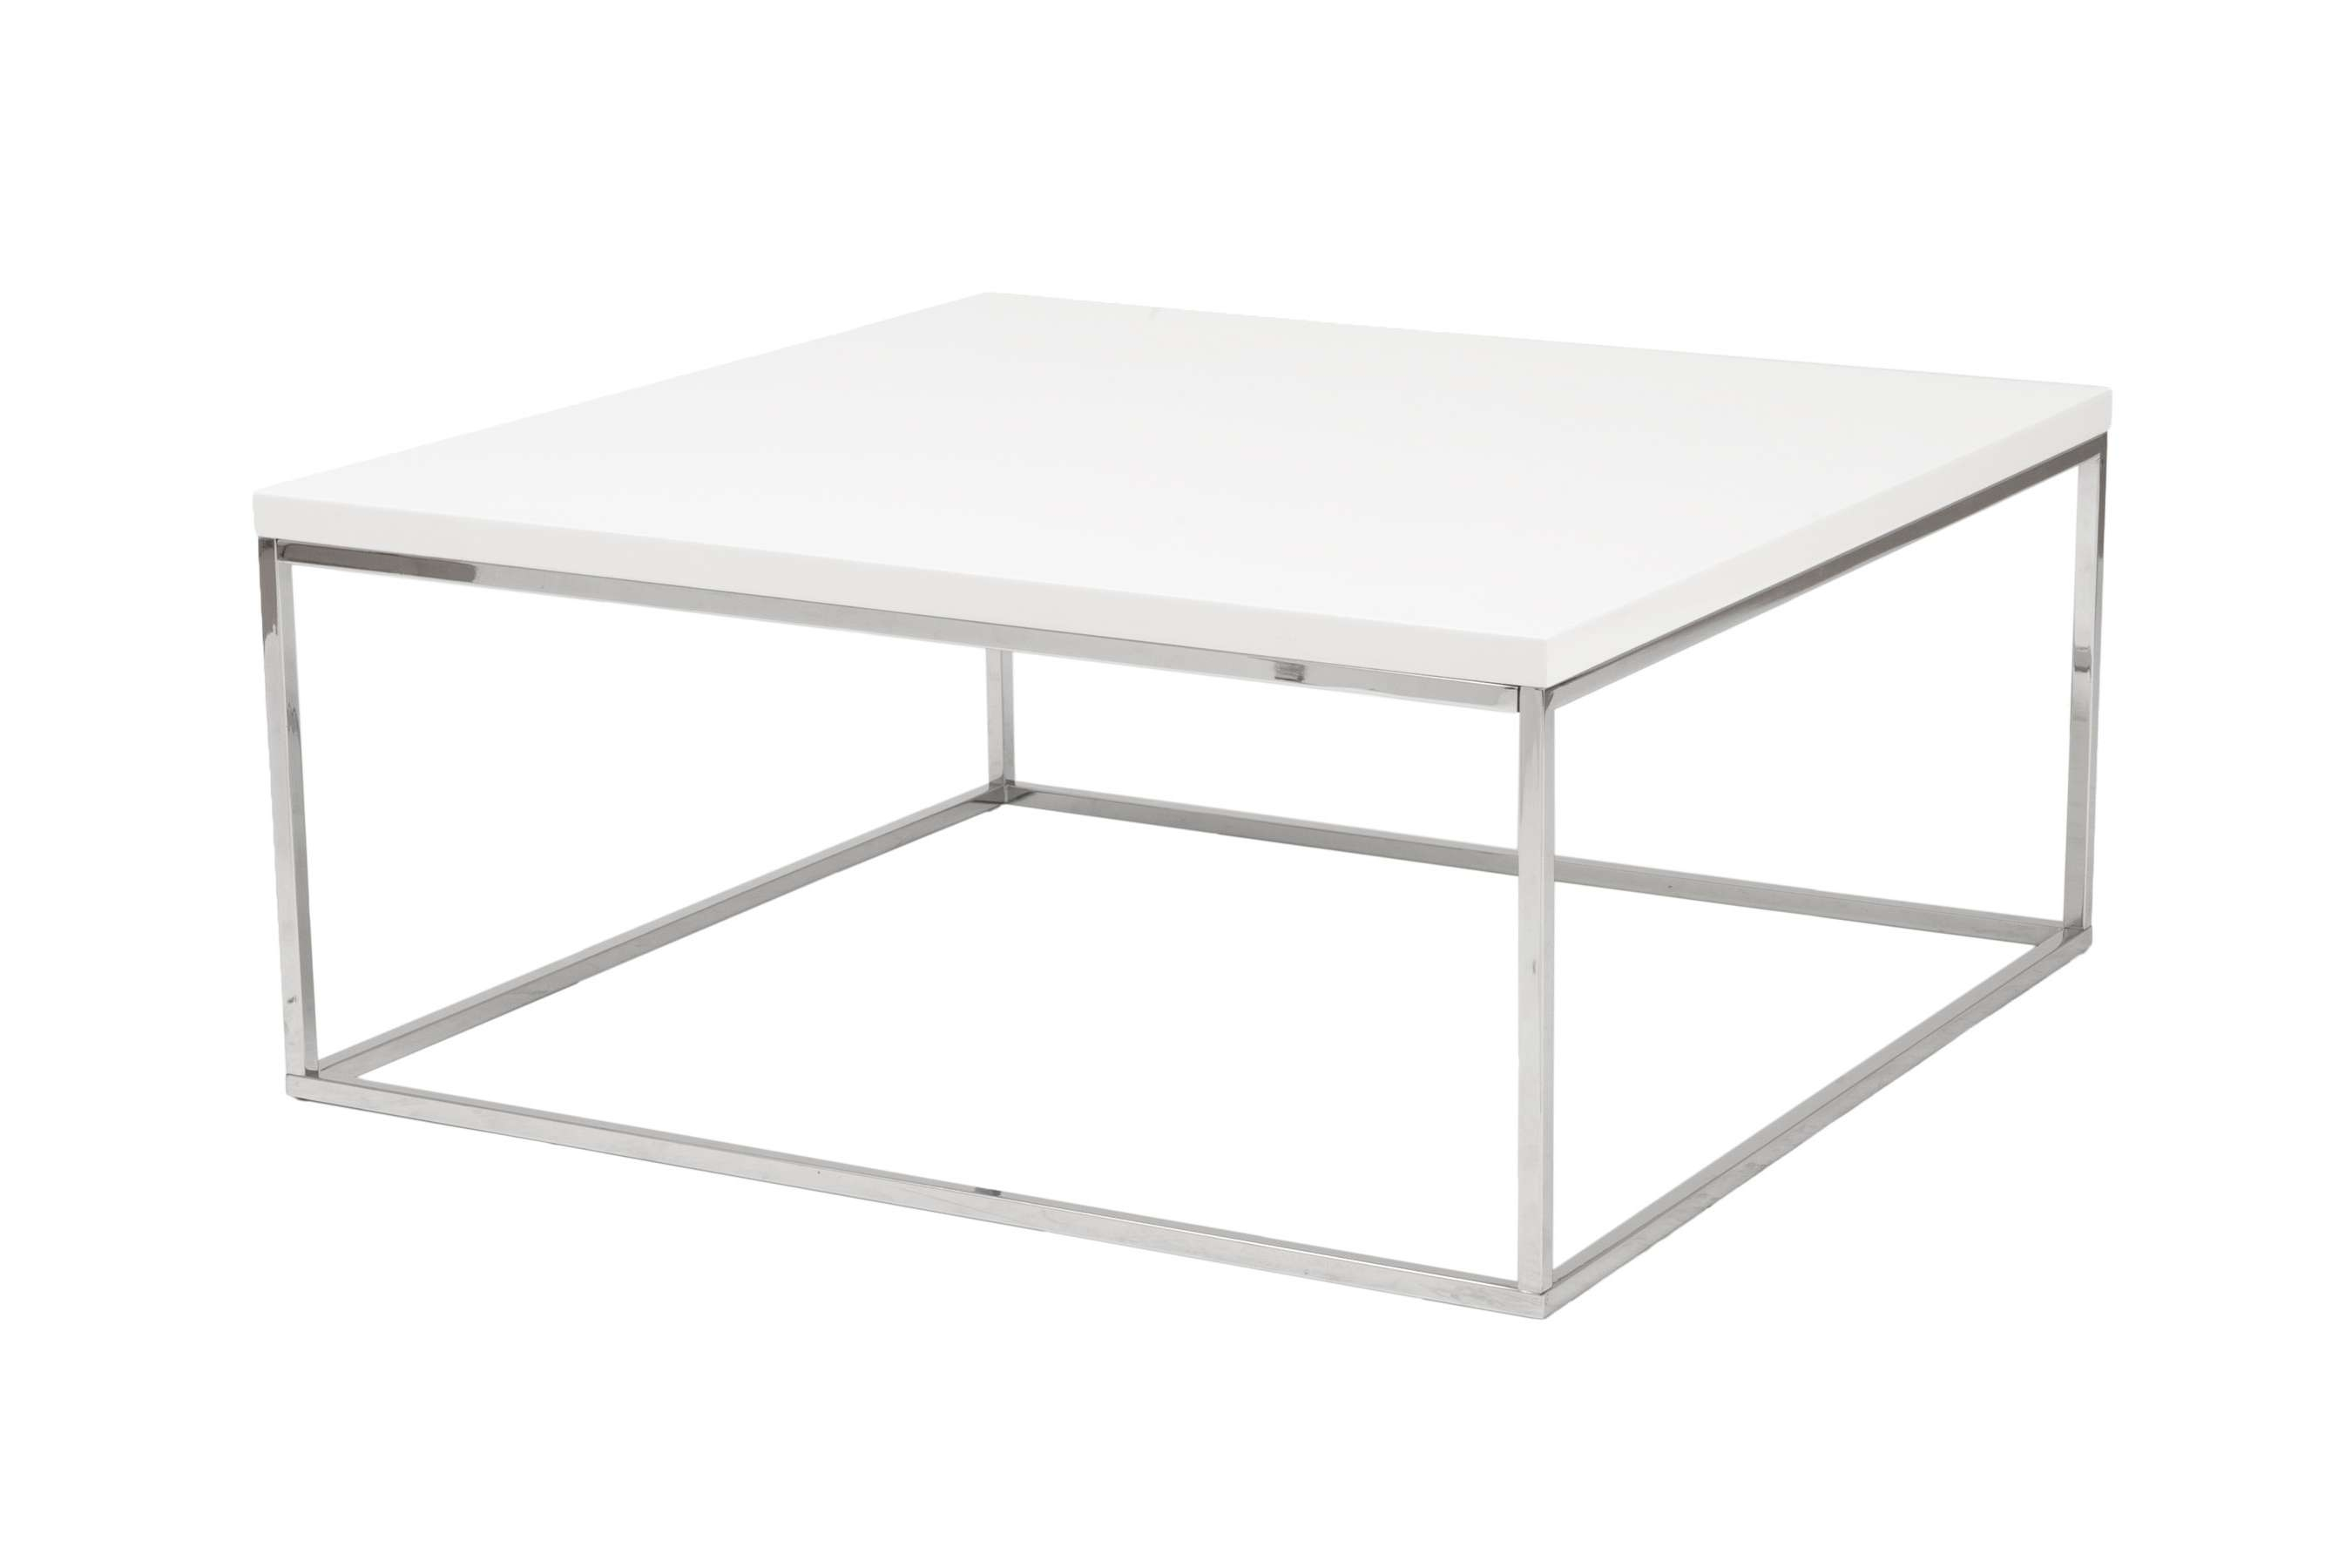 Widely Used Metal Square Coffee Tables Intended For Coffee Tables : Tables Online Modern Coffee Table Square Glass (View 20 of 20)